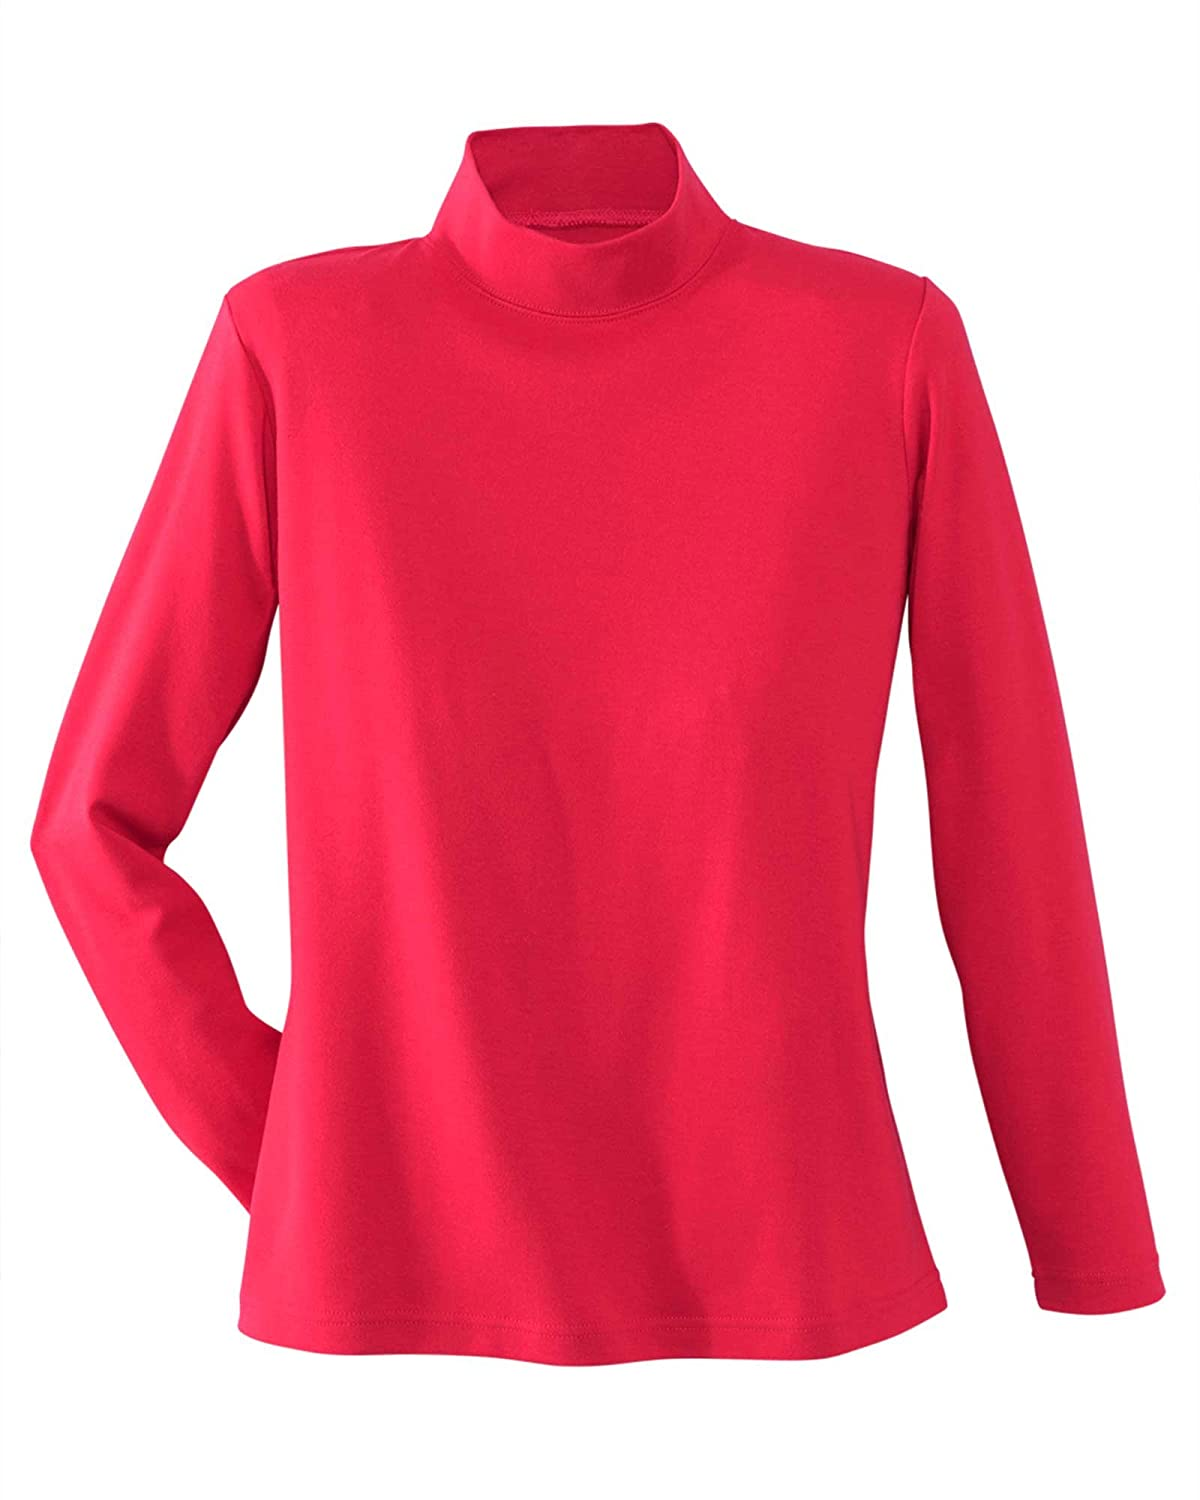 UltraSofts Mock Turtleneck at Amazon Women's Clothing store ...